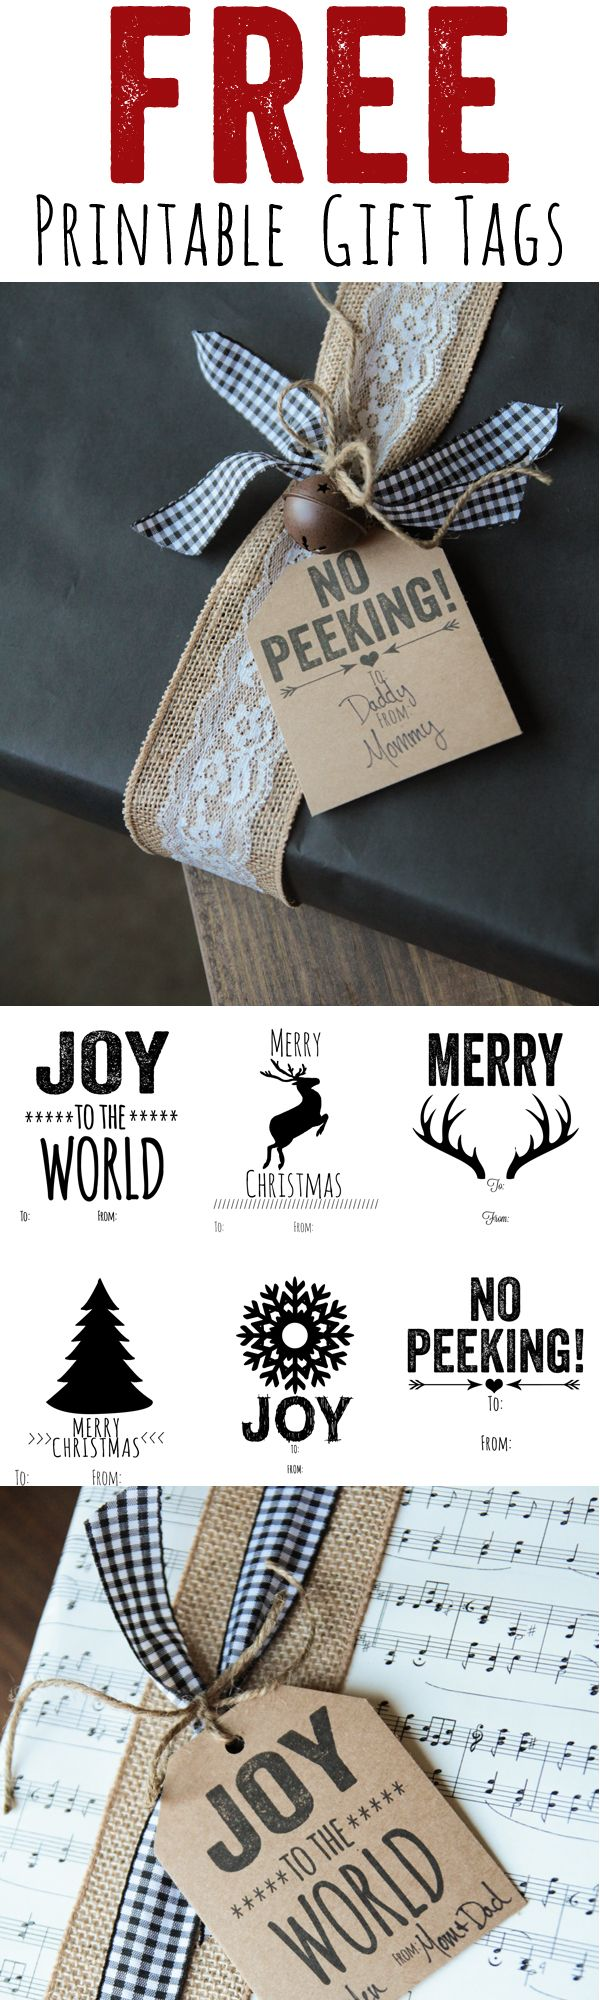 Cutest Ever FREE Printable Christmas Gift Tags | Printable Decor - The BEST Christmas and Holiday FREE Printables - Gift Tags - Gift Card Holders - Christmas Greeting Cards and more FREE Downloadable Printables for the Holiday Seasons #christmasprintables #freechristmasprintables #christmascards #christmasgifttags #printablechristmascards #printablechristmasgifttags #christmaspapercrafts